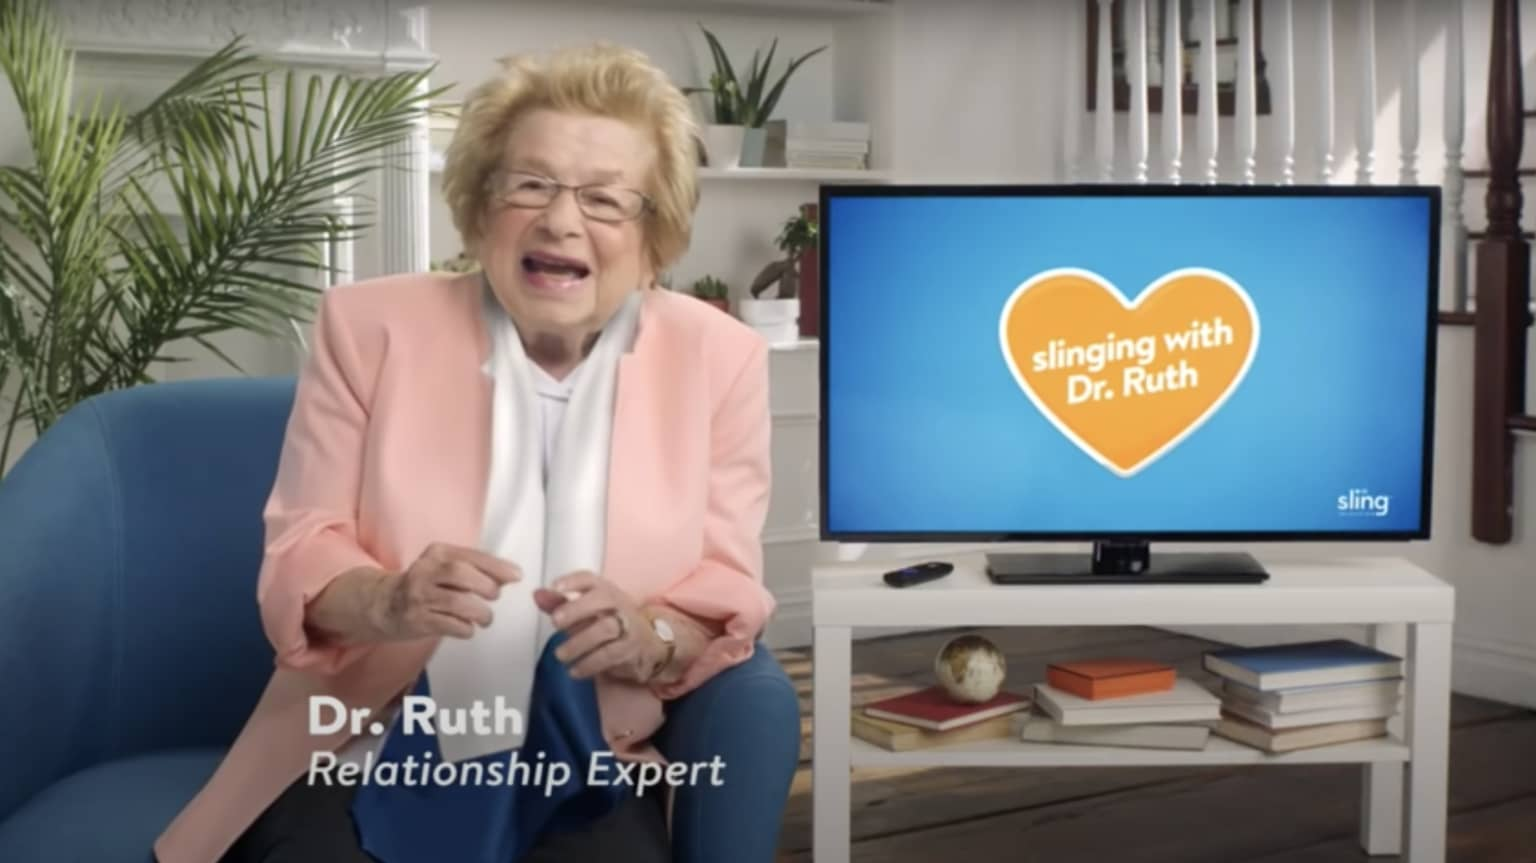 Slinging with Dr. Ruth